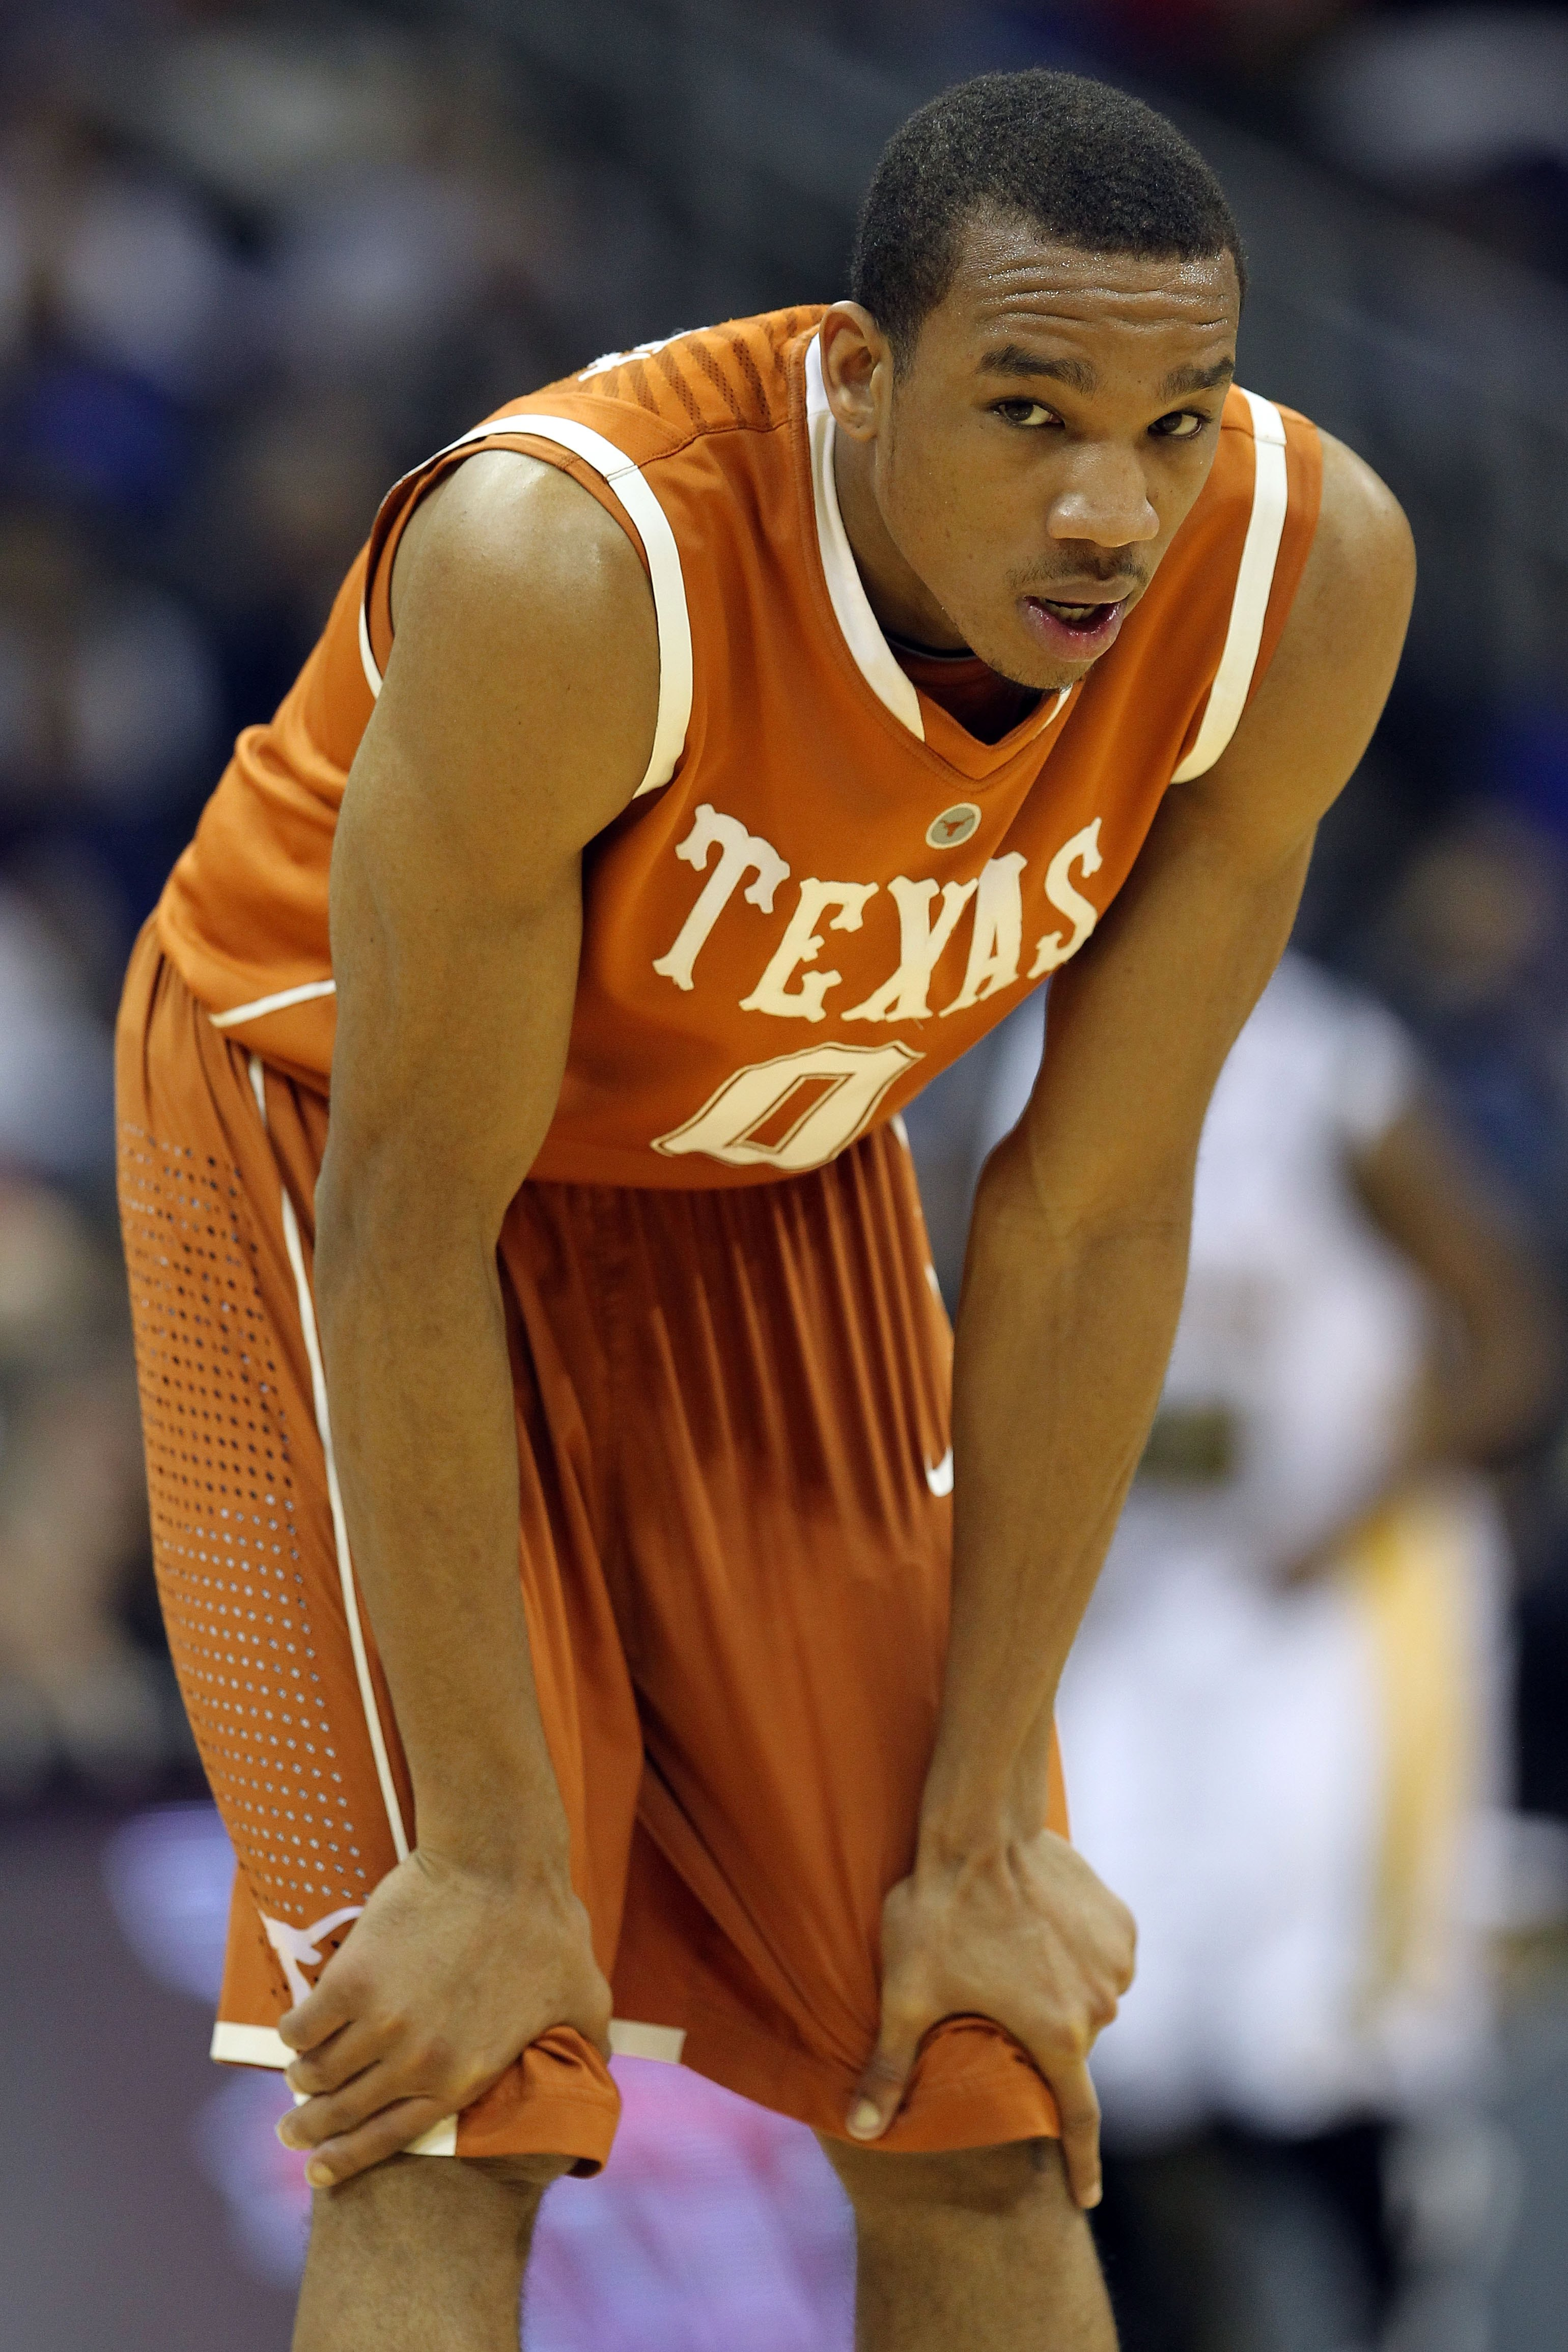 KANSAS CITY, MO - MARCH 11:  Avery Bradley #0 of the Texas Longhorns looks on while taking on the Baylor Bears during the quarterfinals of the 2010 Phillips 66 Big 12 Men's Basketball Tournament at the Sprint Center on March 11, 2010 in Kansas City, Misso